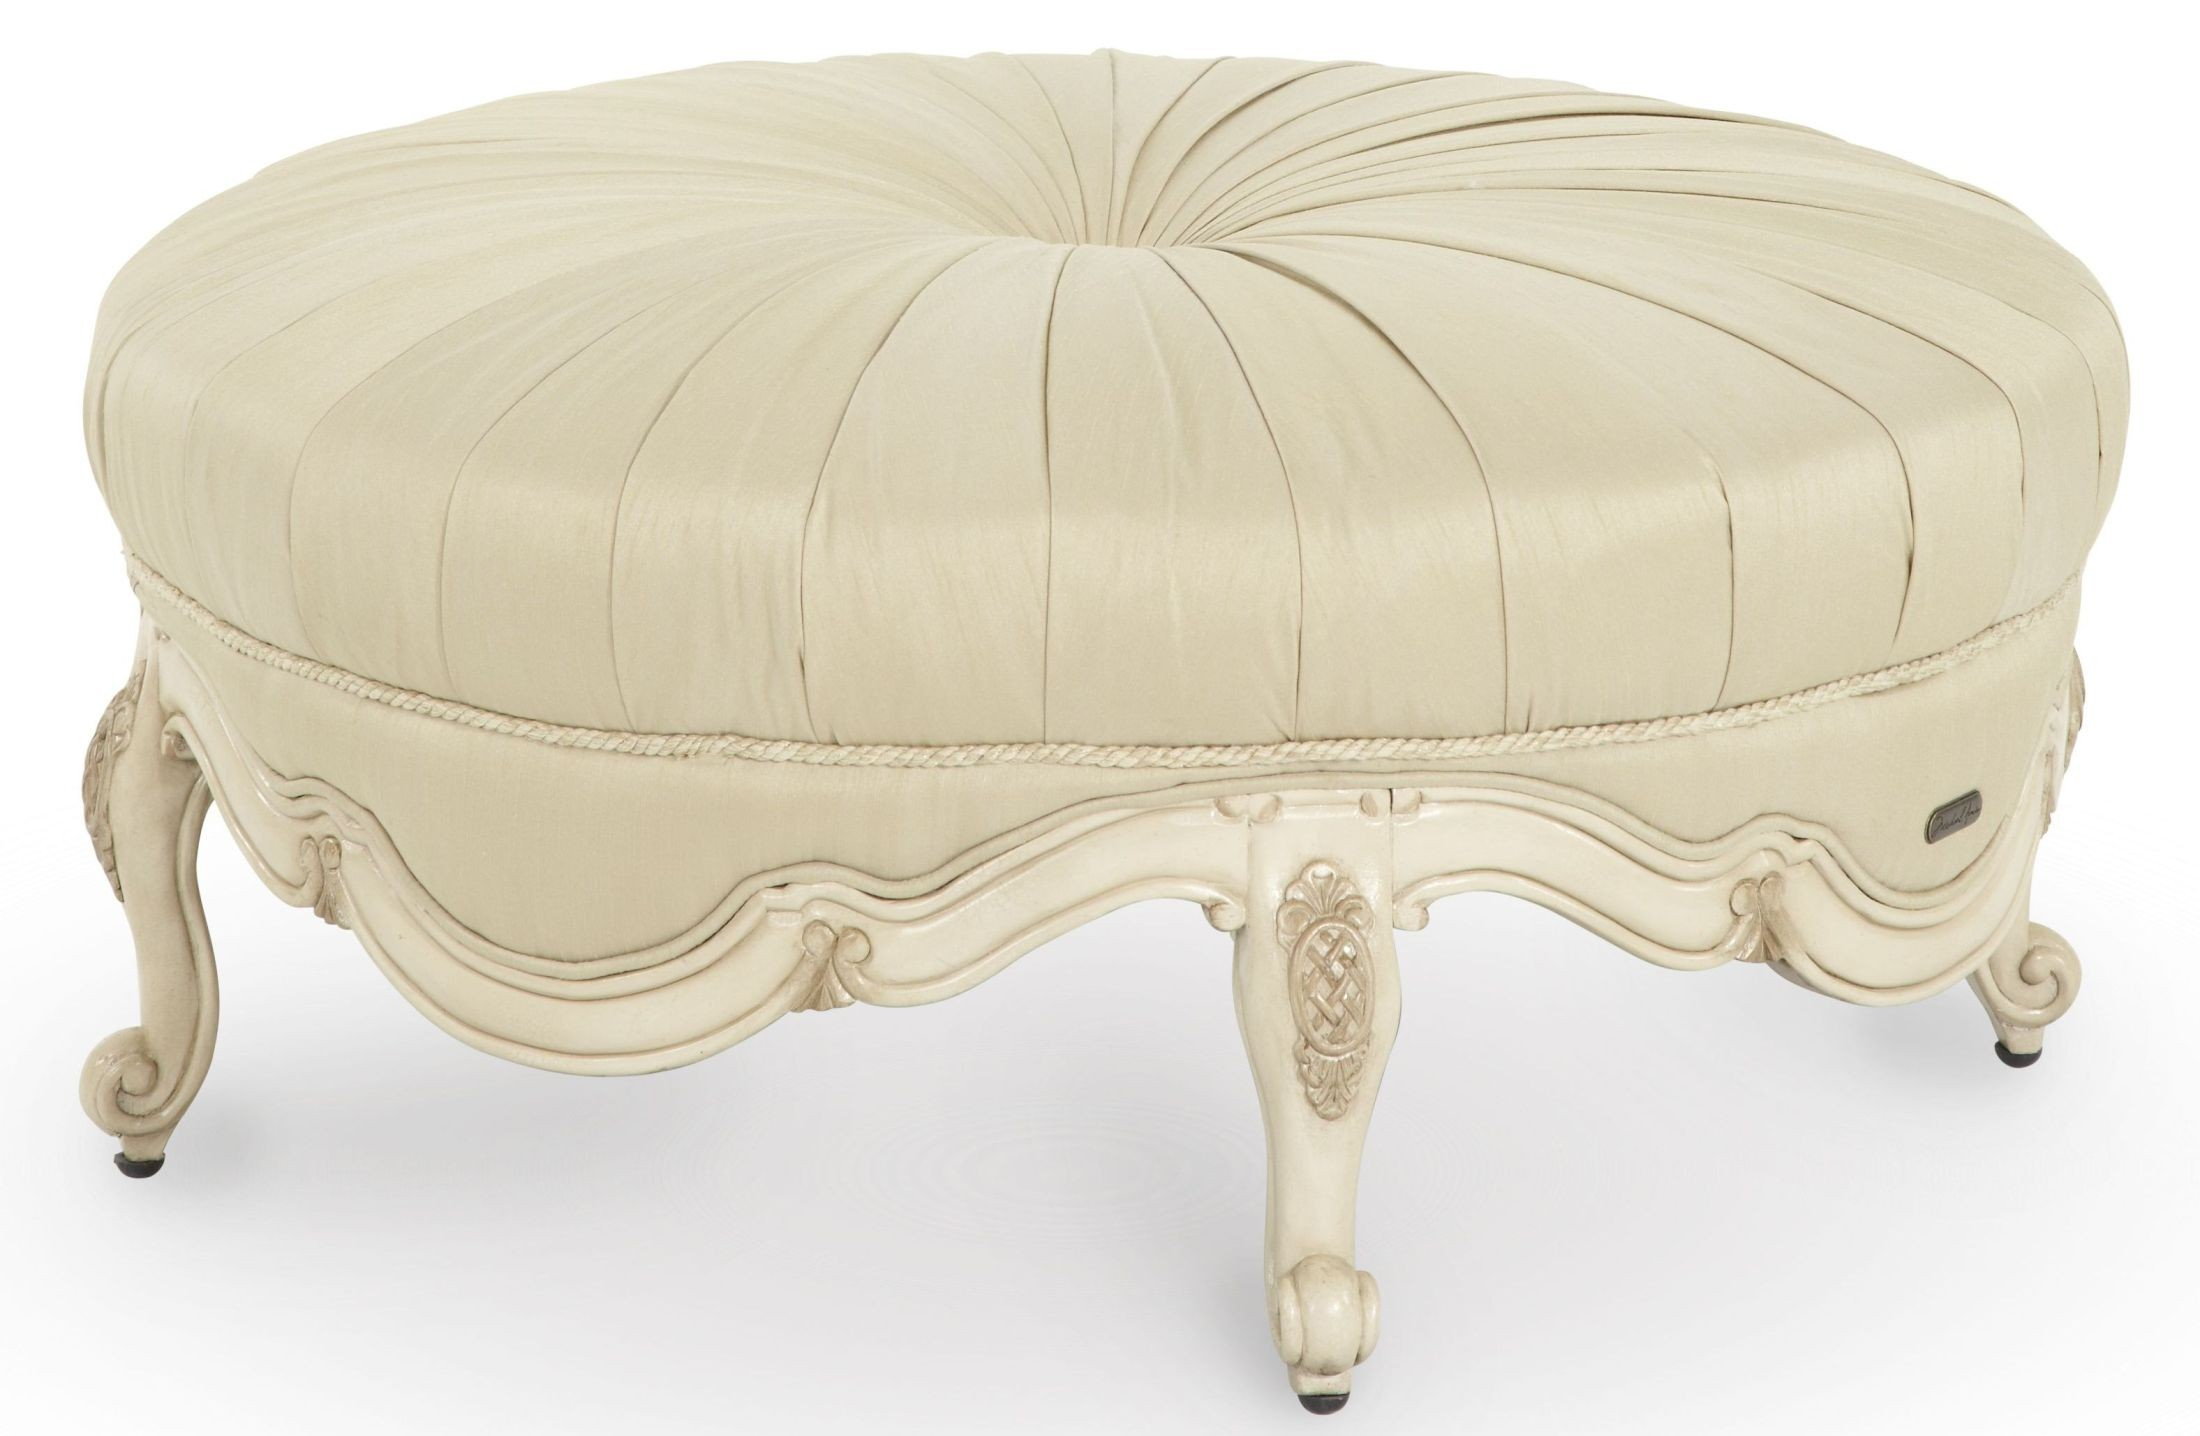 lavelle blanc cocktail ottoman from aico 54879 04 coleman furniture. Black Bedroom Furniture Sets. Home Design Ideas